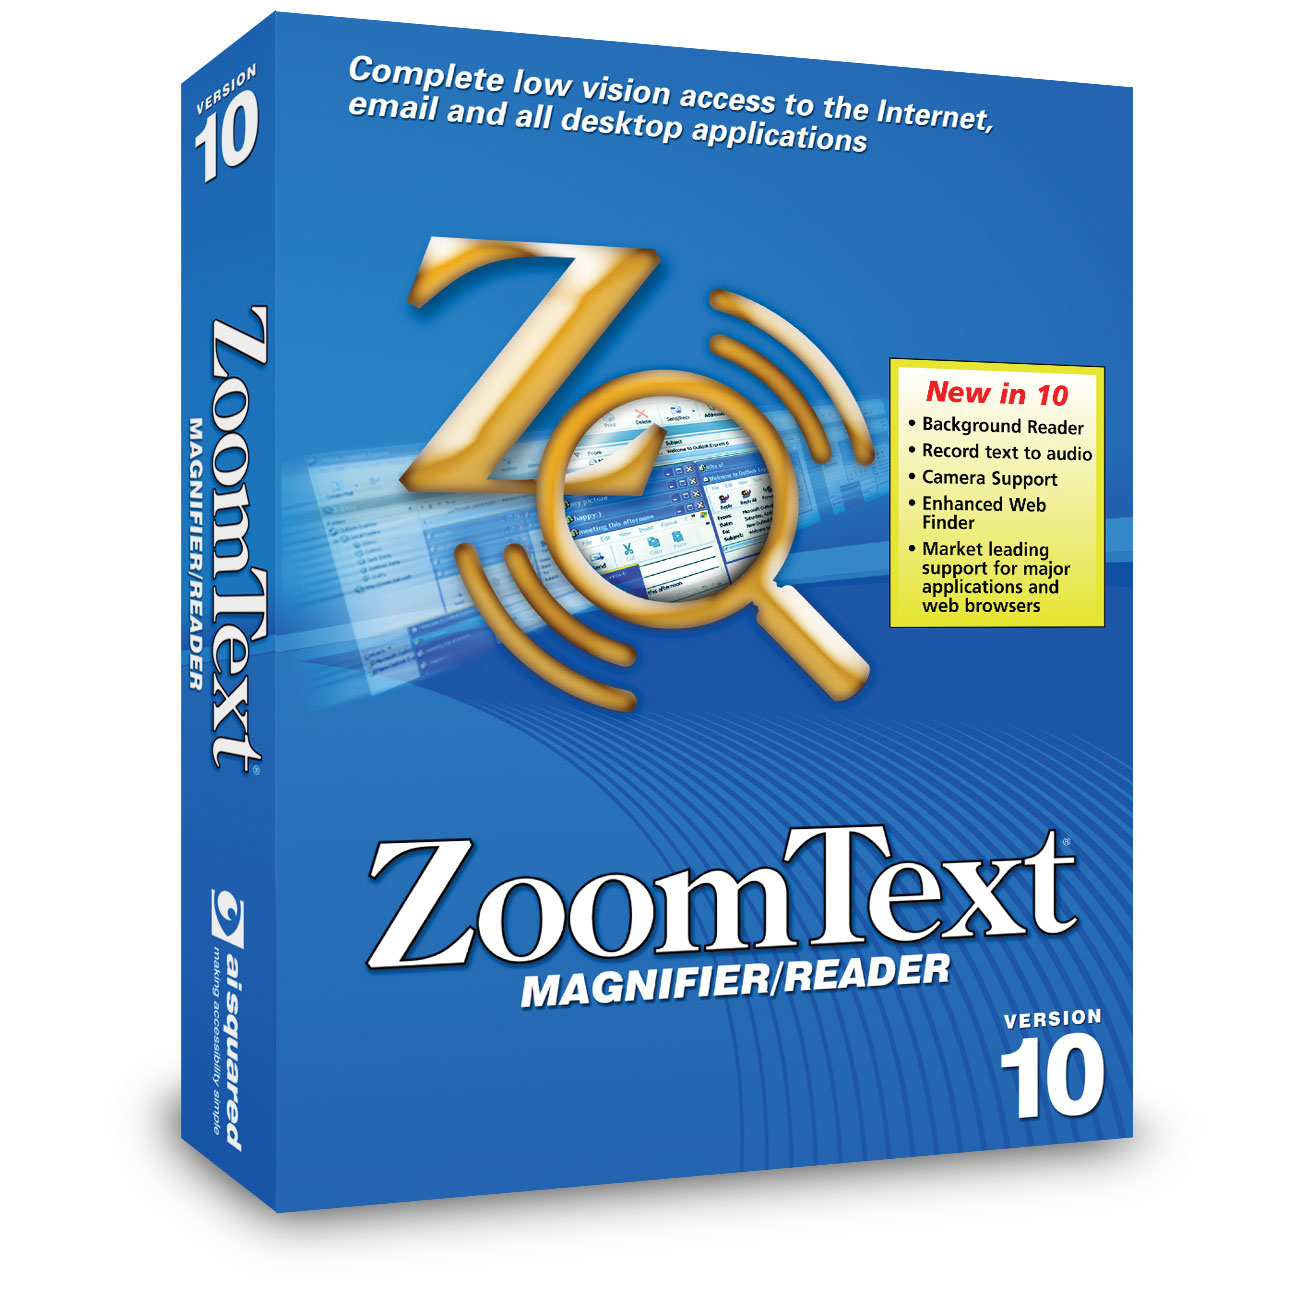 ZoomText 10 Magnifier/Reader Price: $599.00